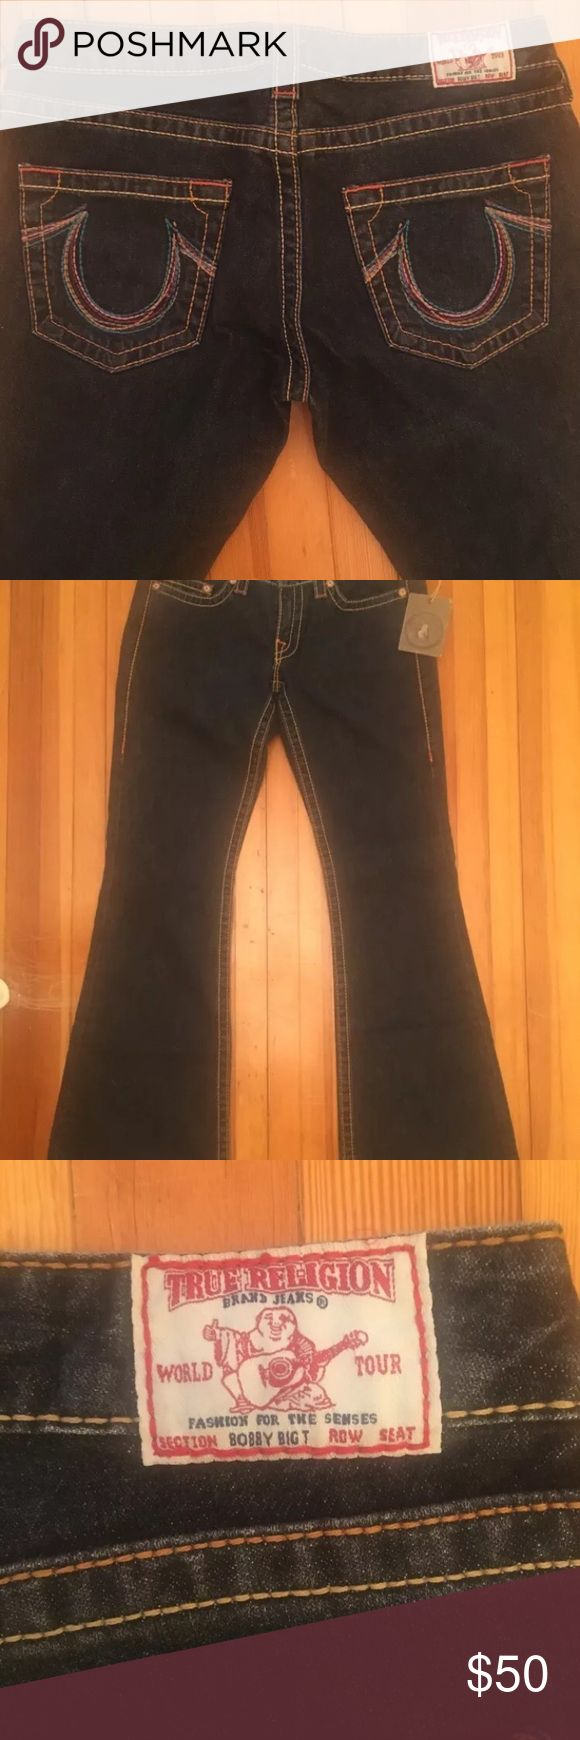 Authentic True religion women's jeans size 31 Authentic True Religion women's Rainbow stitched Bobby Big T jeans. Size 31  Black Boot cut slightly faded effect, no stretch True Religion Jeans Boot Cut